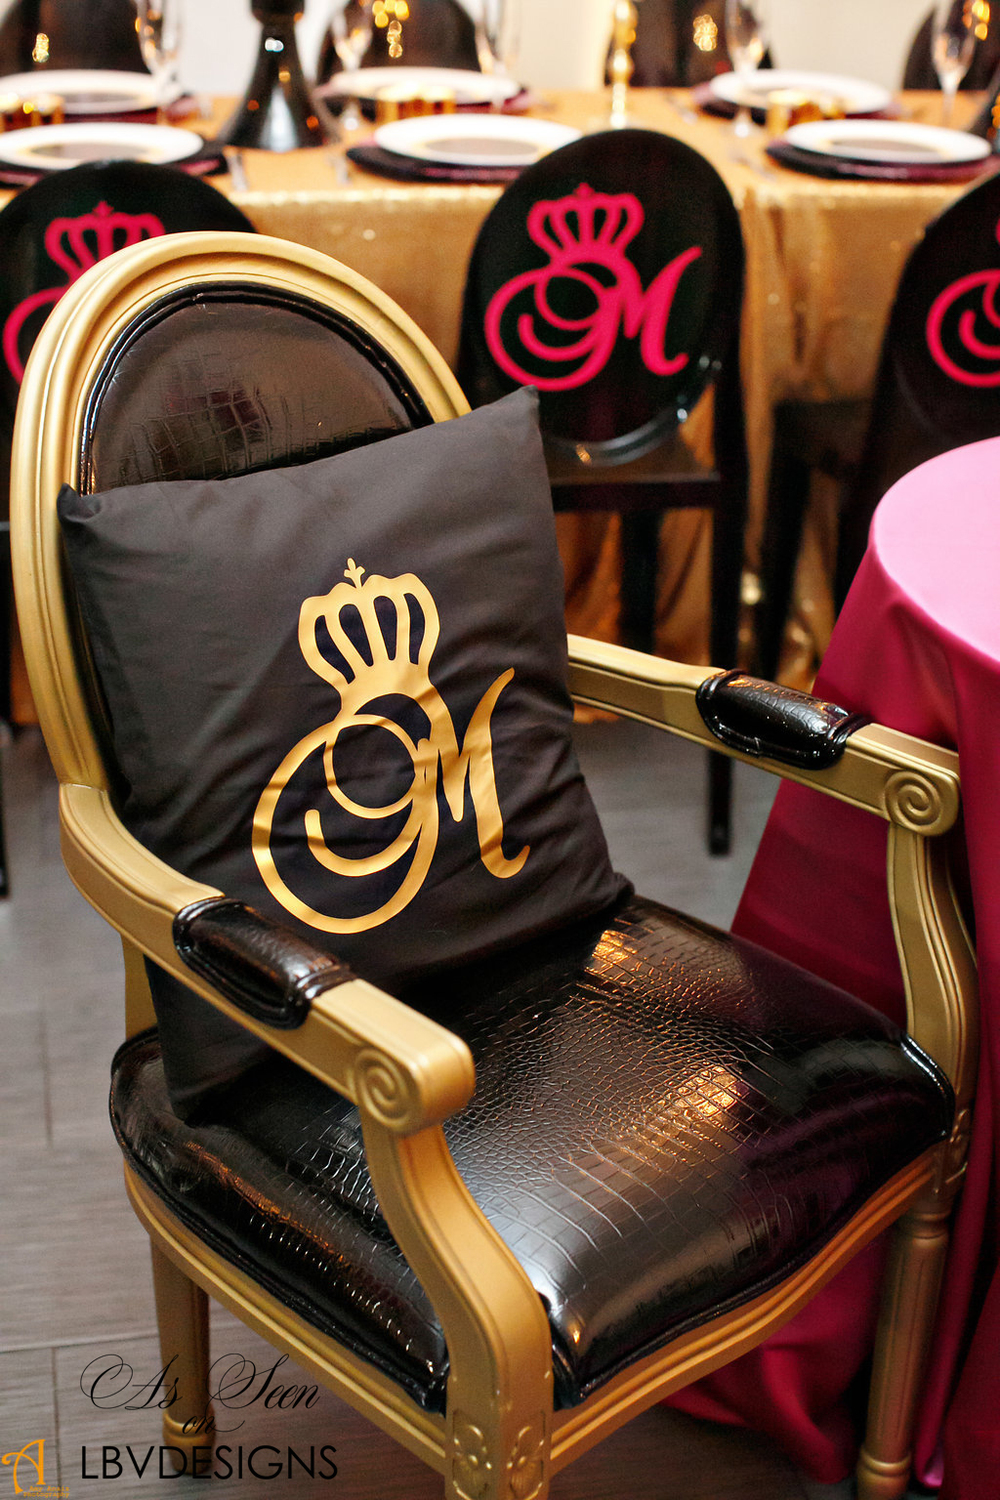 LBVDesigns_chair_decals_pillows.jpg